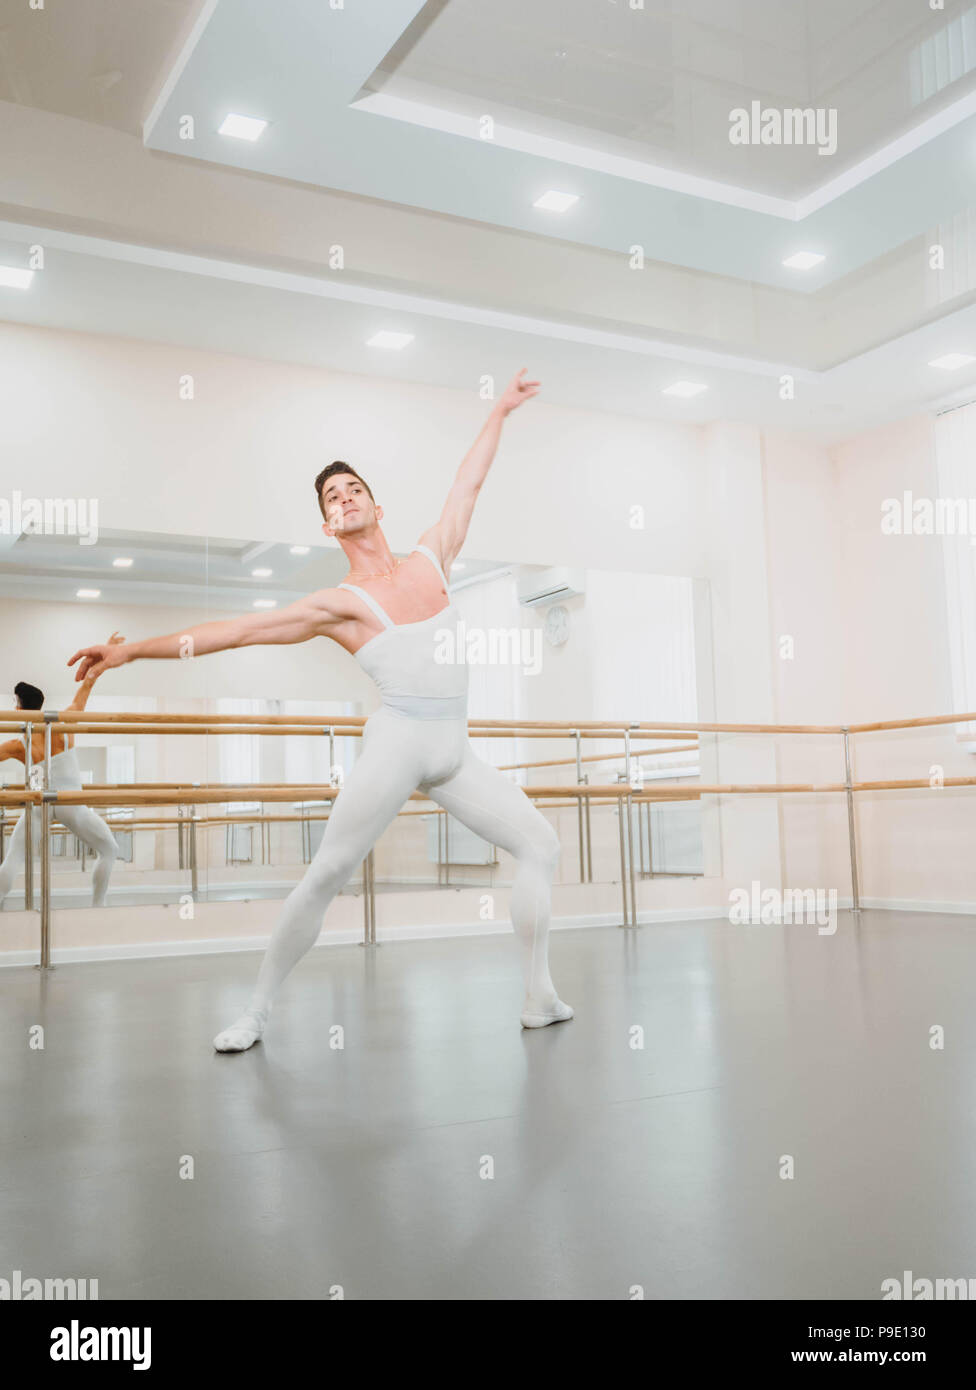 Young handsome male dancer practicing in classical ballet in small studio with mirrors. Man in white tights. Professional choreographer is working on creating performance. - Stock Image